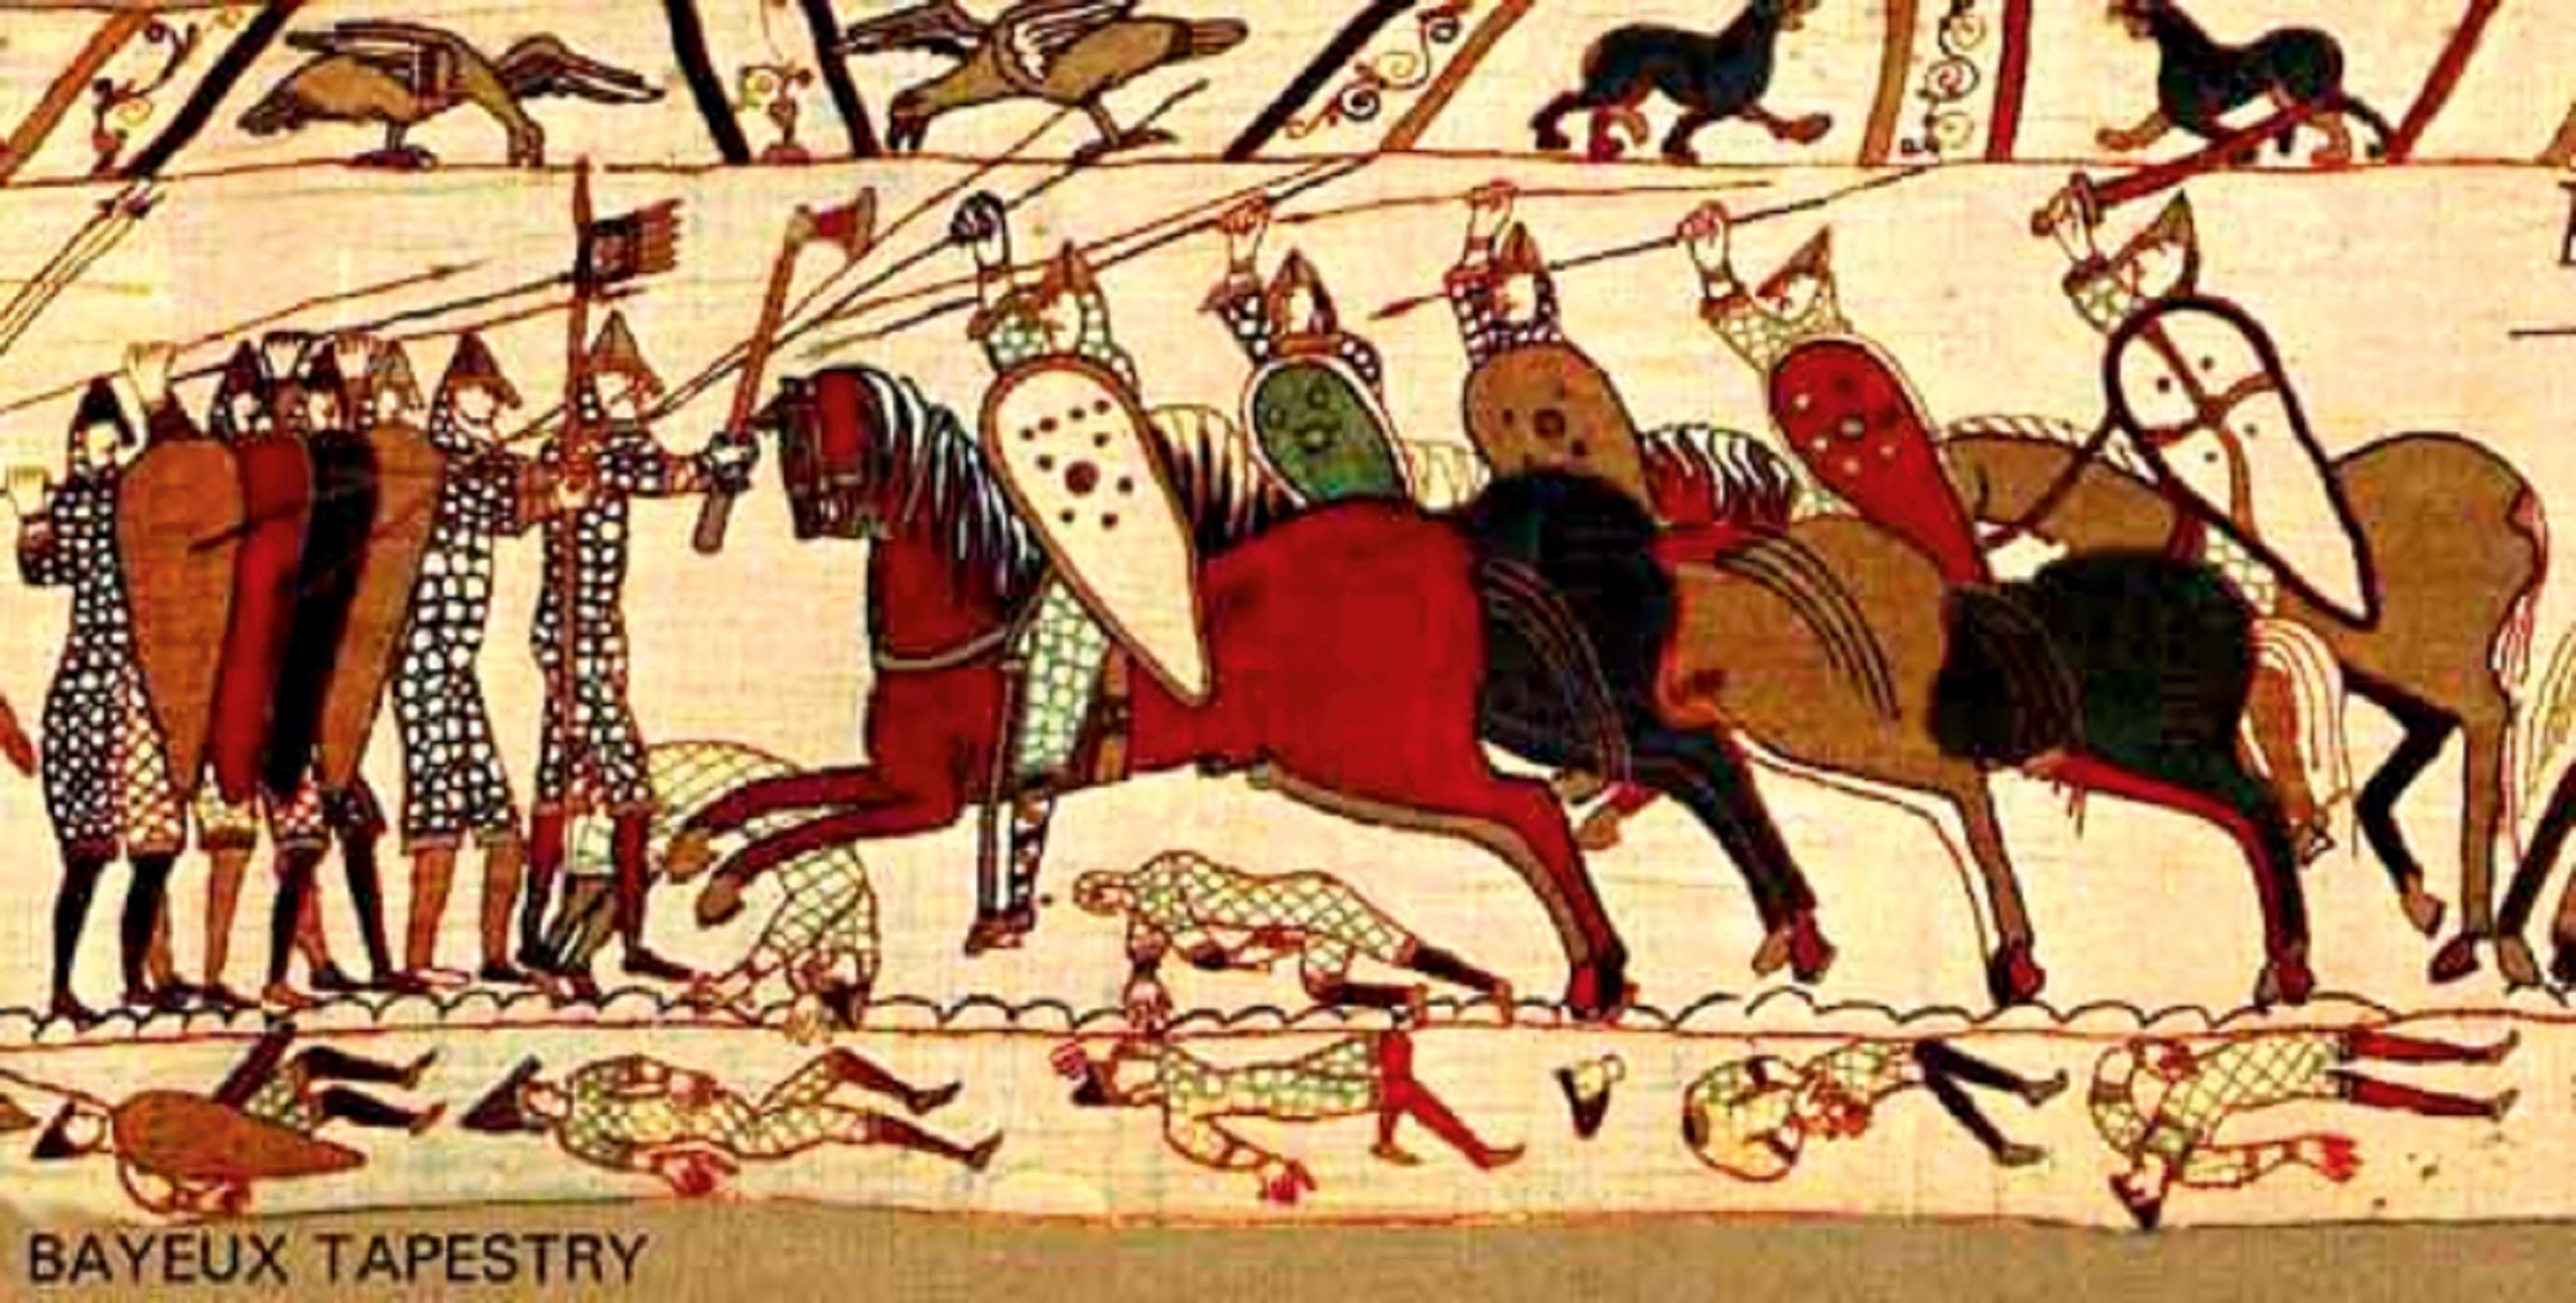 The Battle of Hastings, a segment of the Bayeux Tapestry